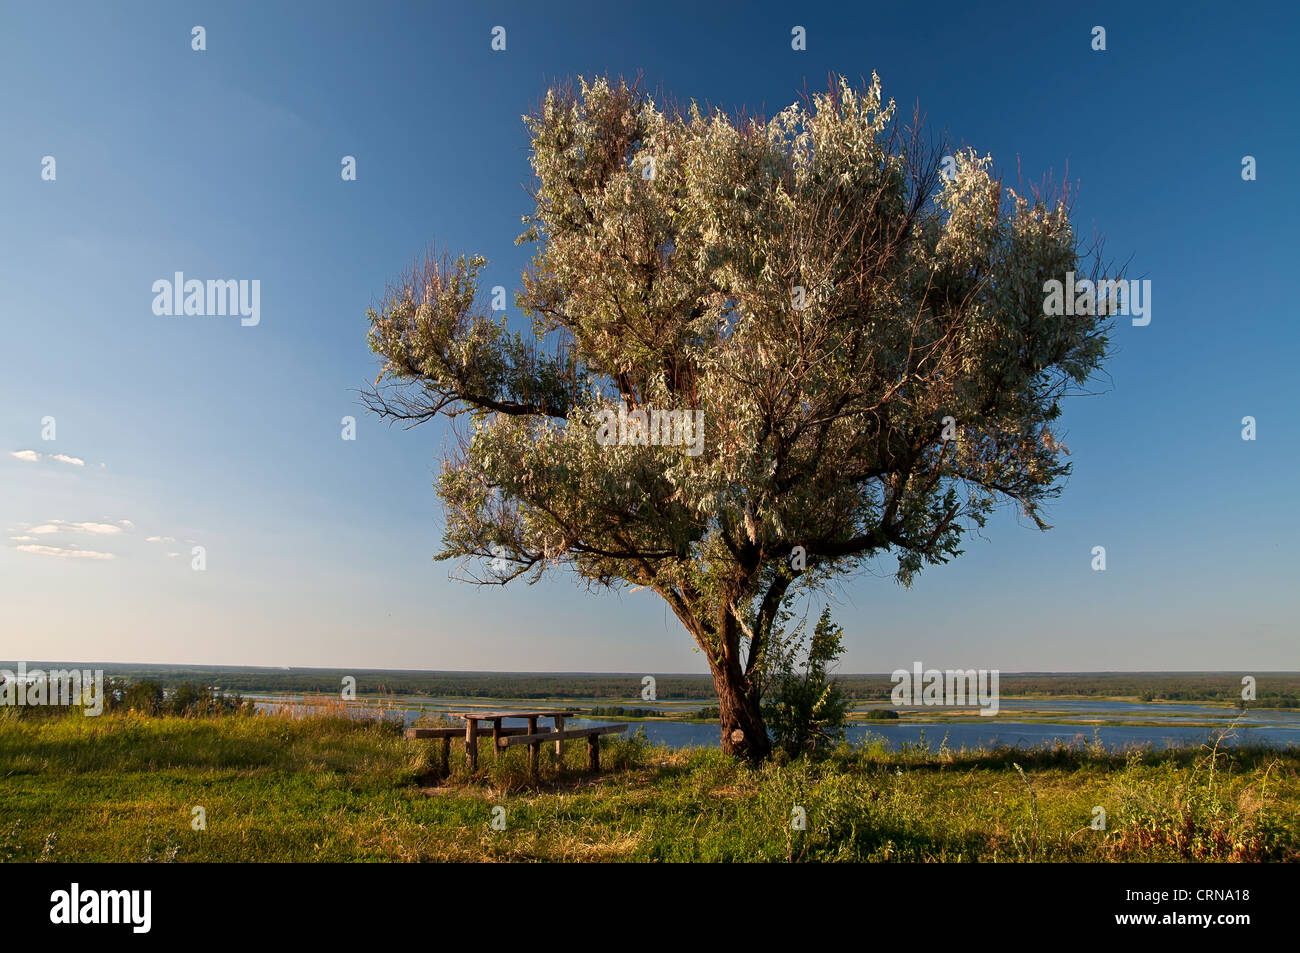 Old wild olive tree, a table and benches on the banks of the Dnieper, Kiev region, Ukraine - Stock Image